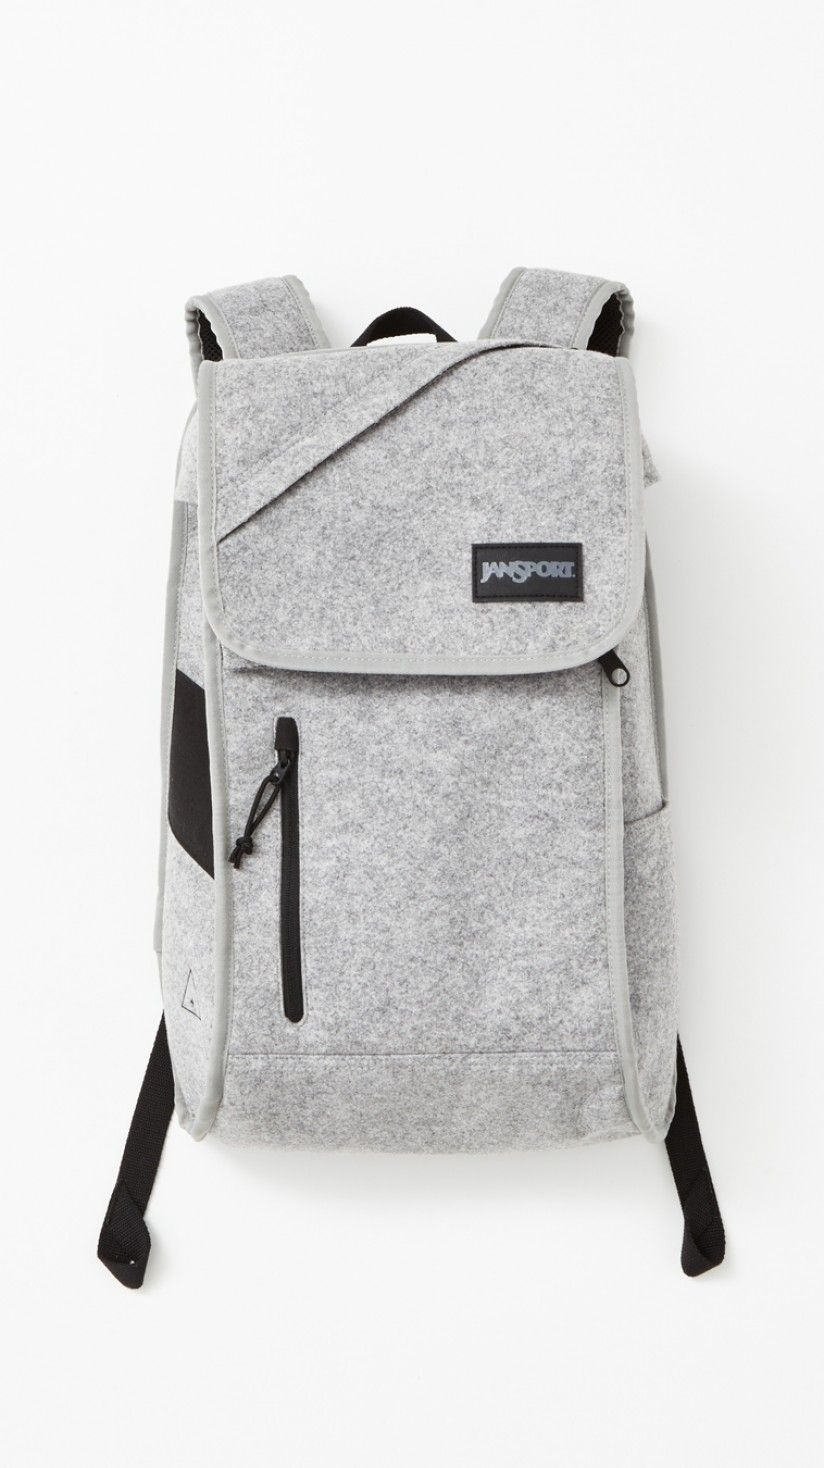 4063cf7c7a6 Backpacks For College Near Me - CEAGESP